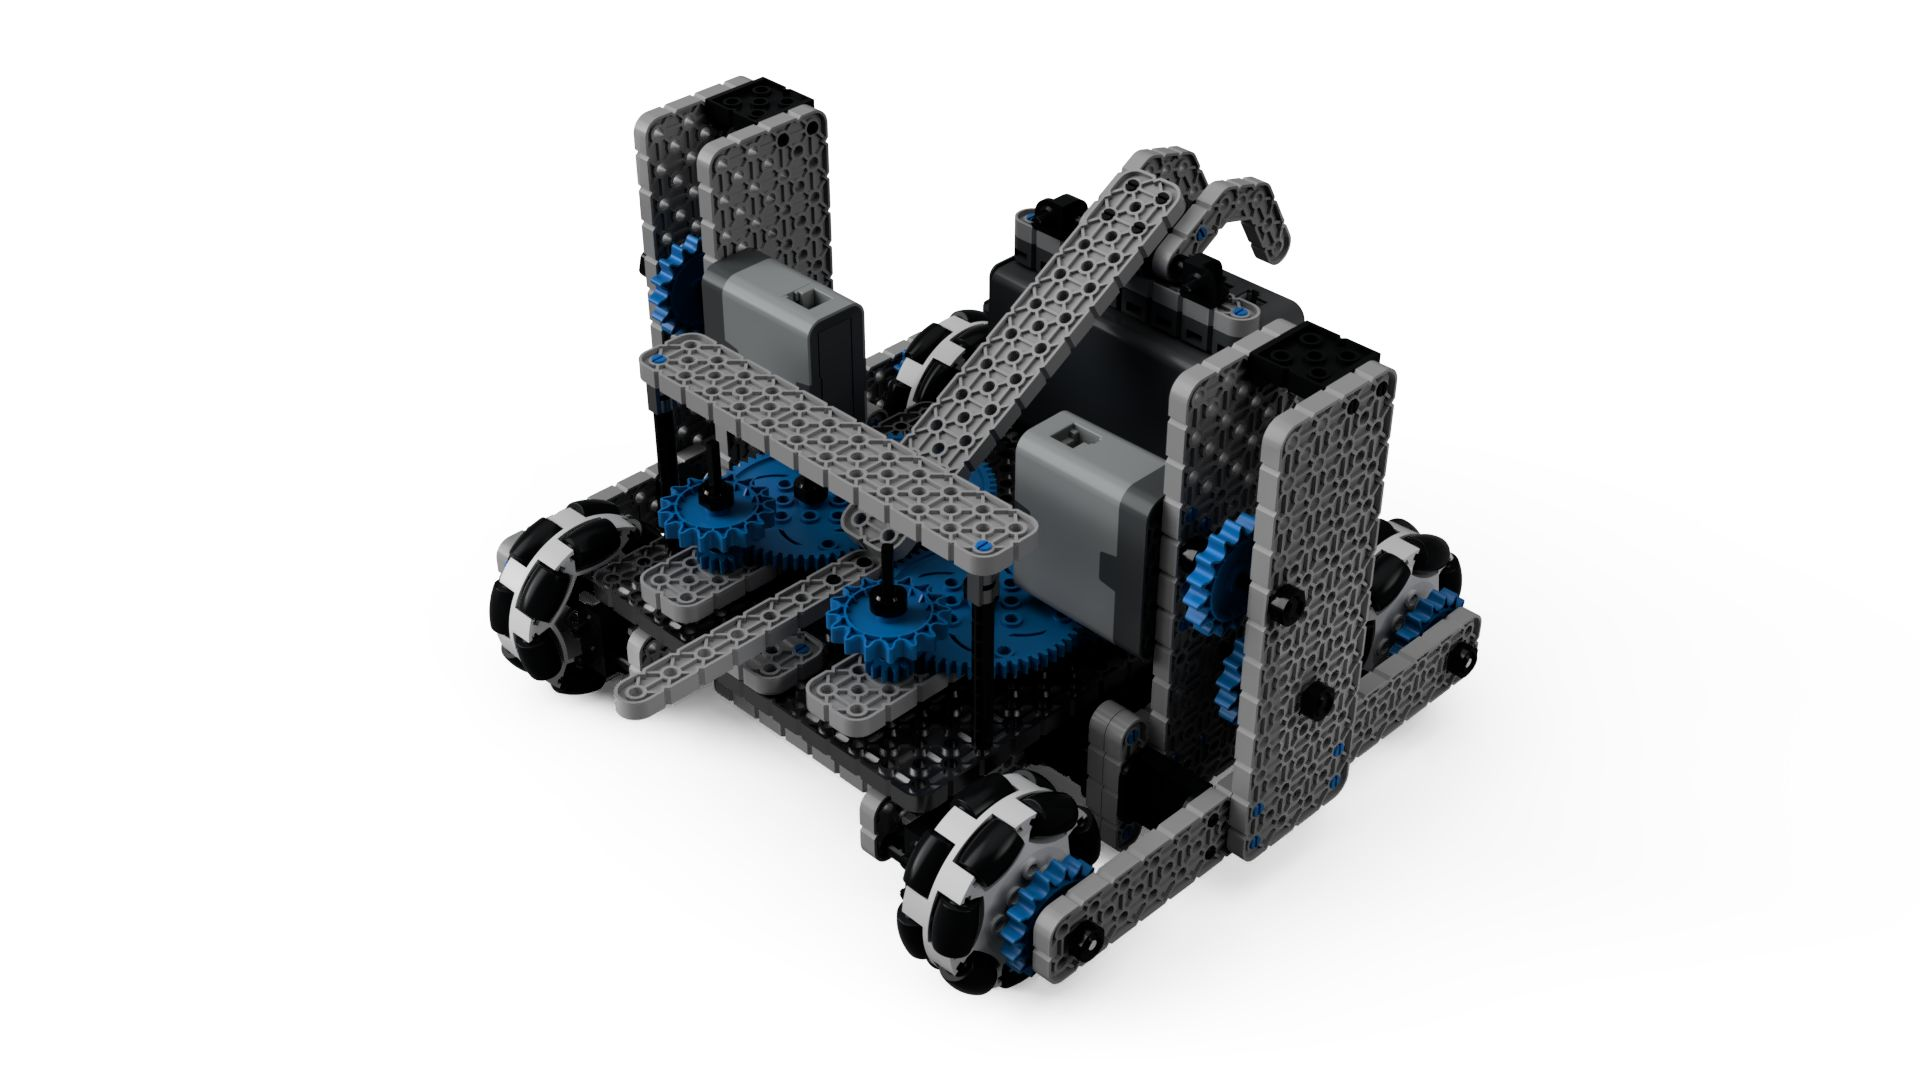 Vex-iq---ball-trigger-robot-2019-jun-05-08-25-54pm-000-customizedview27138651880-png-3500-3500